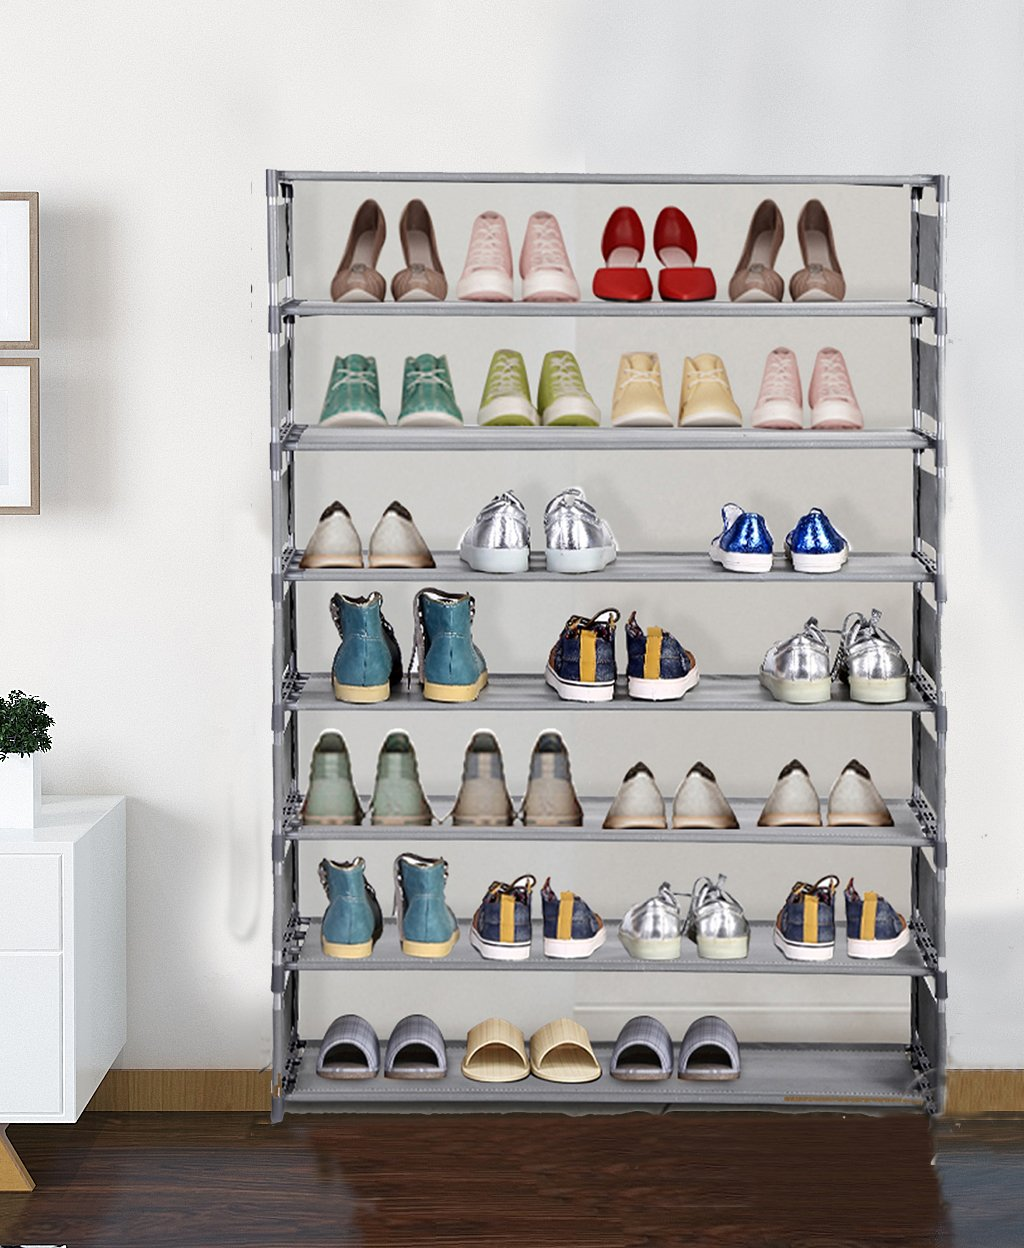 Jaketen Shoe Rack, 8 Tier Shoe Rack Storage Shelves, Non-woven Fabric  Stackable Show Tower Holds 32 Pairs Of Shoes, Easy Assembly Shoe Shelf